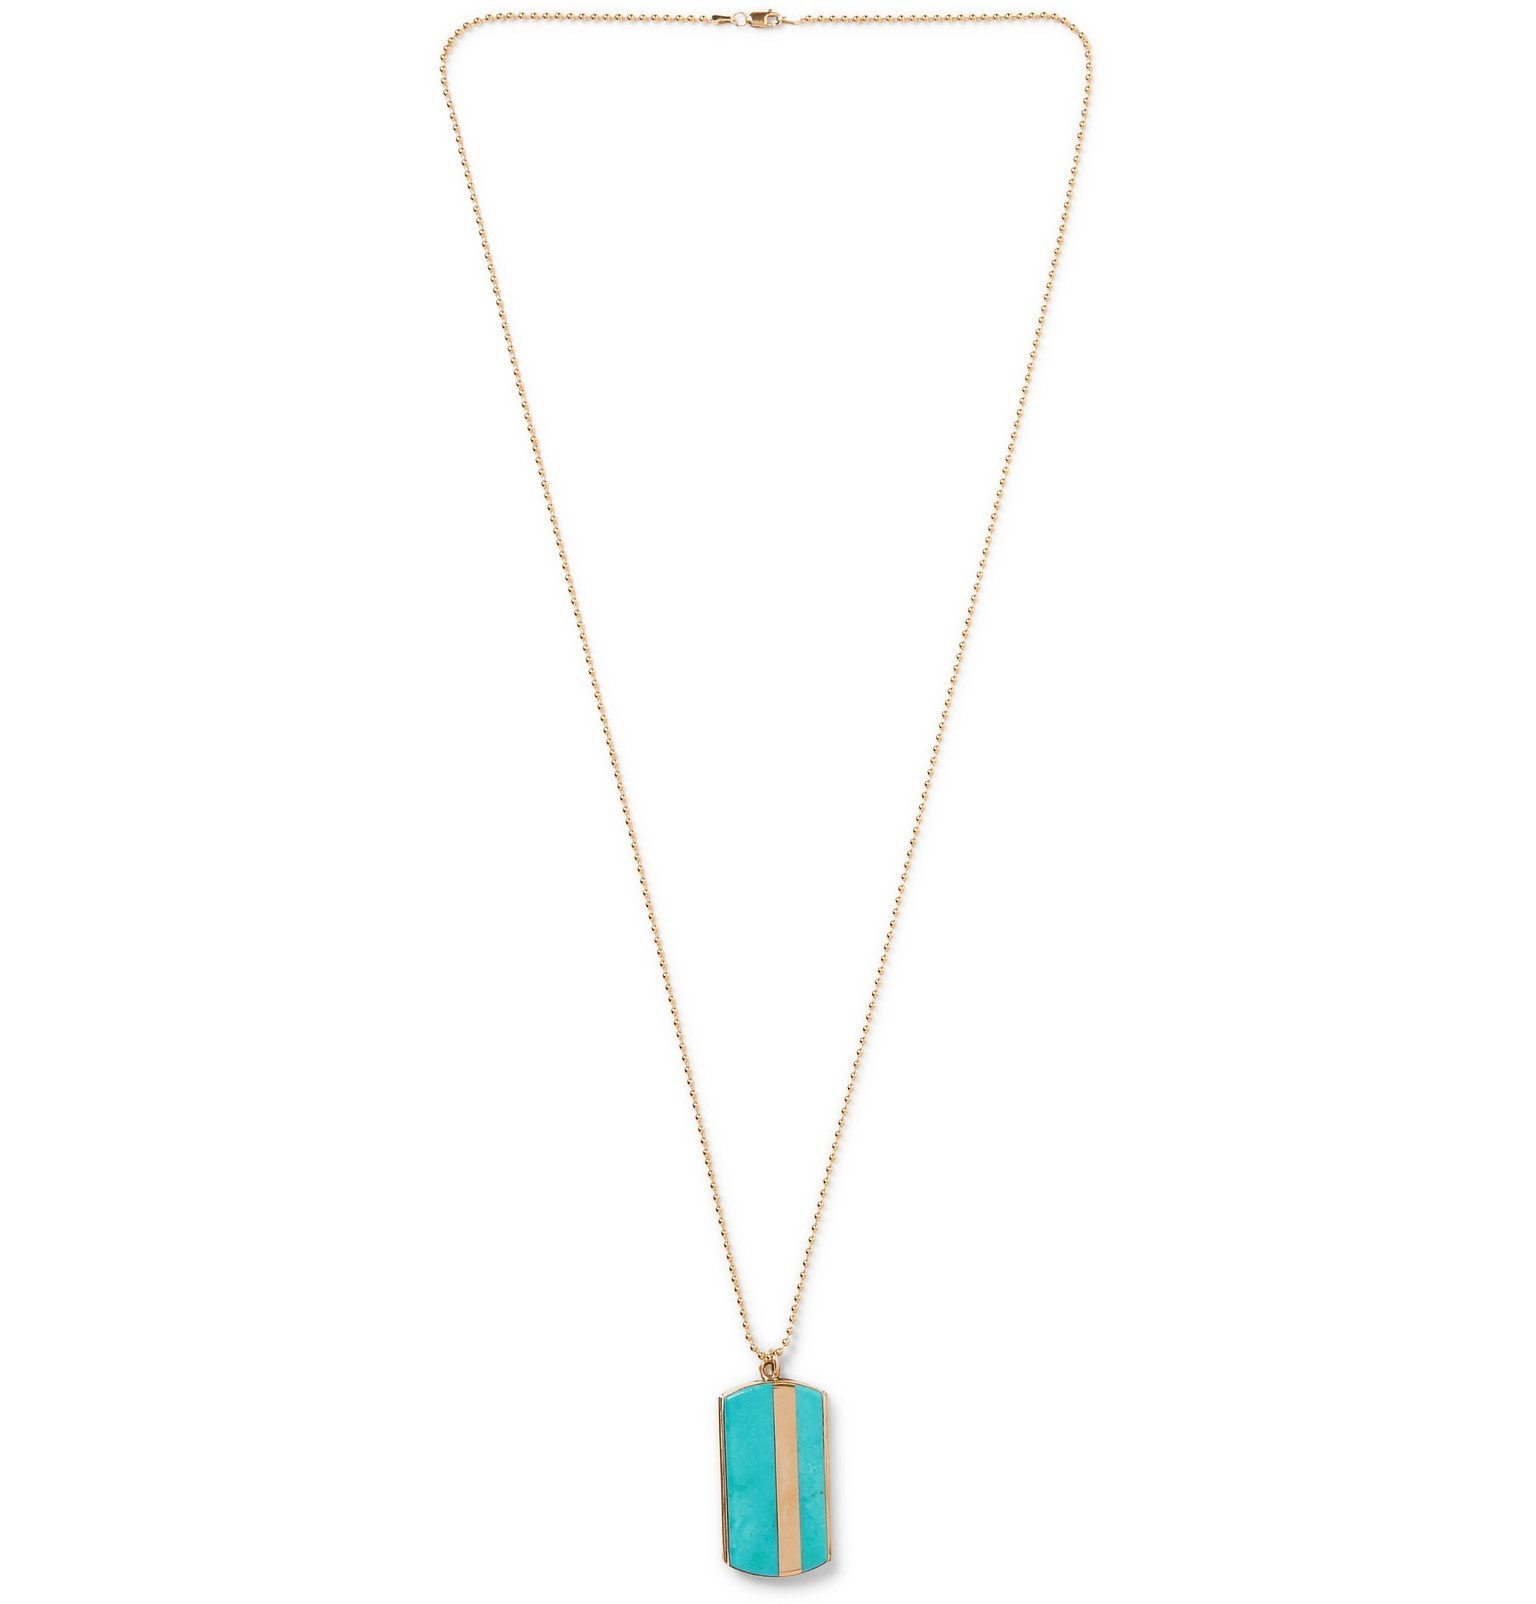 Photo: Peyote Bird - Turquoise and 14-Karat Gold-Filled Necklace - Gold